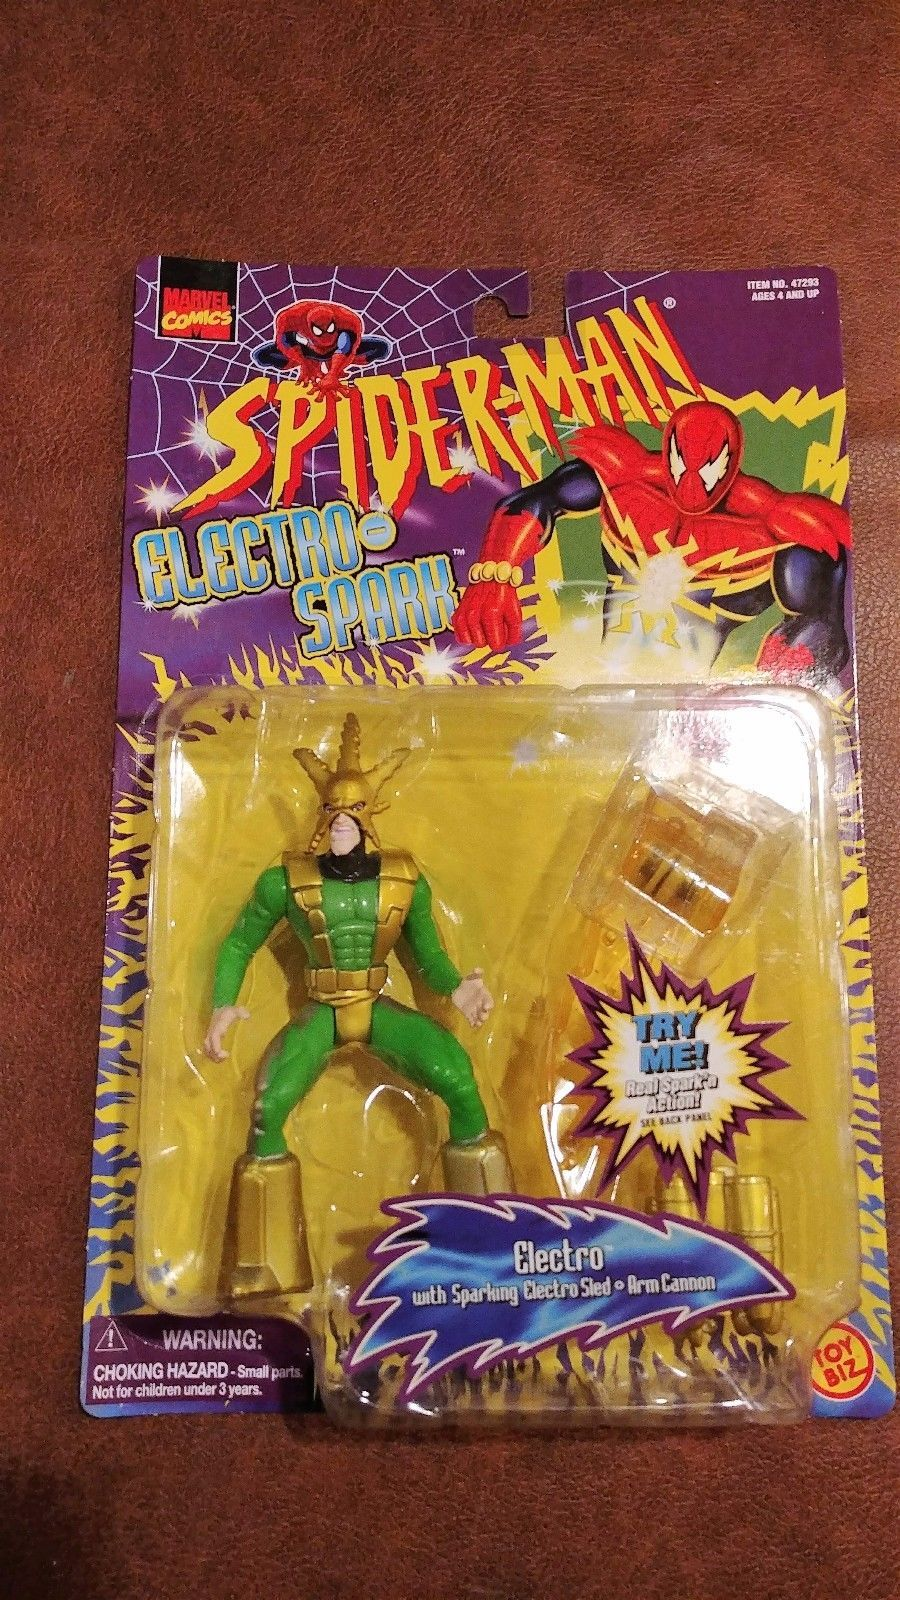 "Spider-Man Electro Spark ELECTRO 5"" with sparking electro sled"